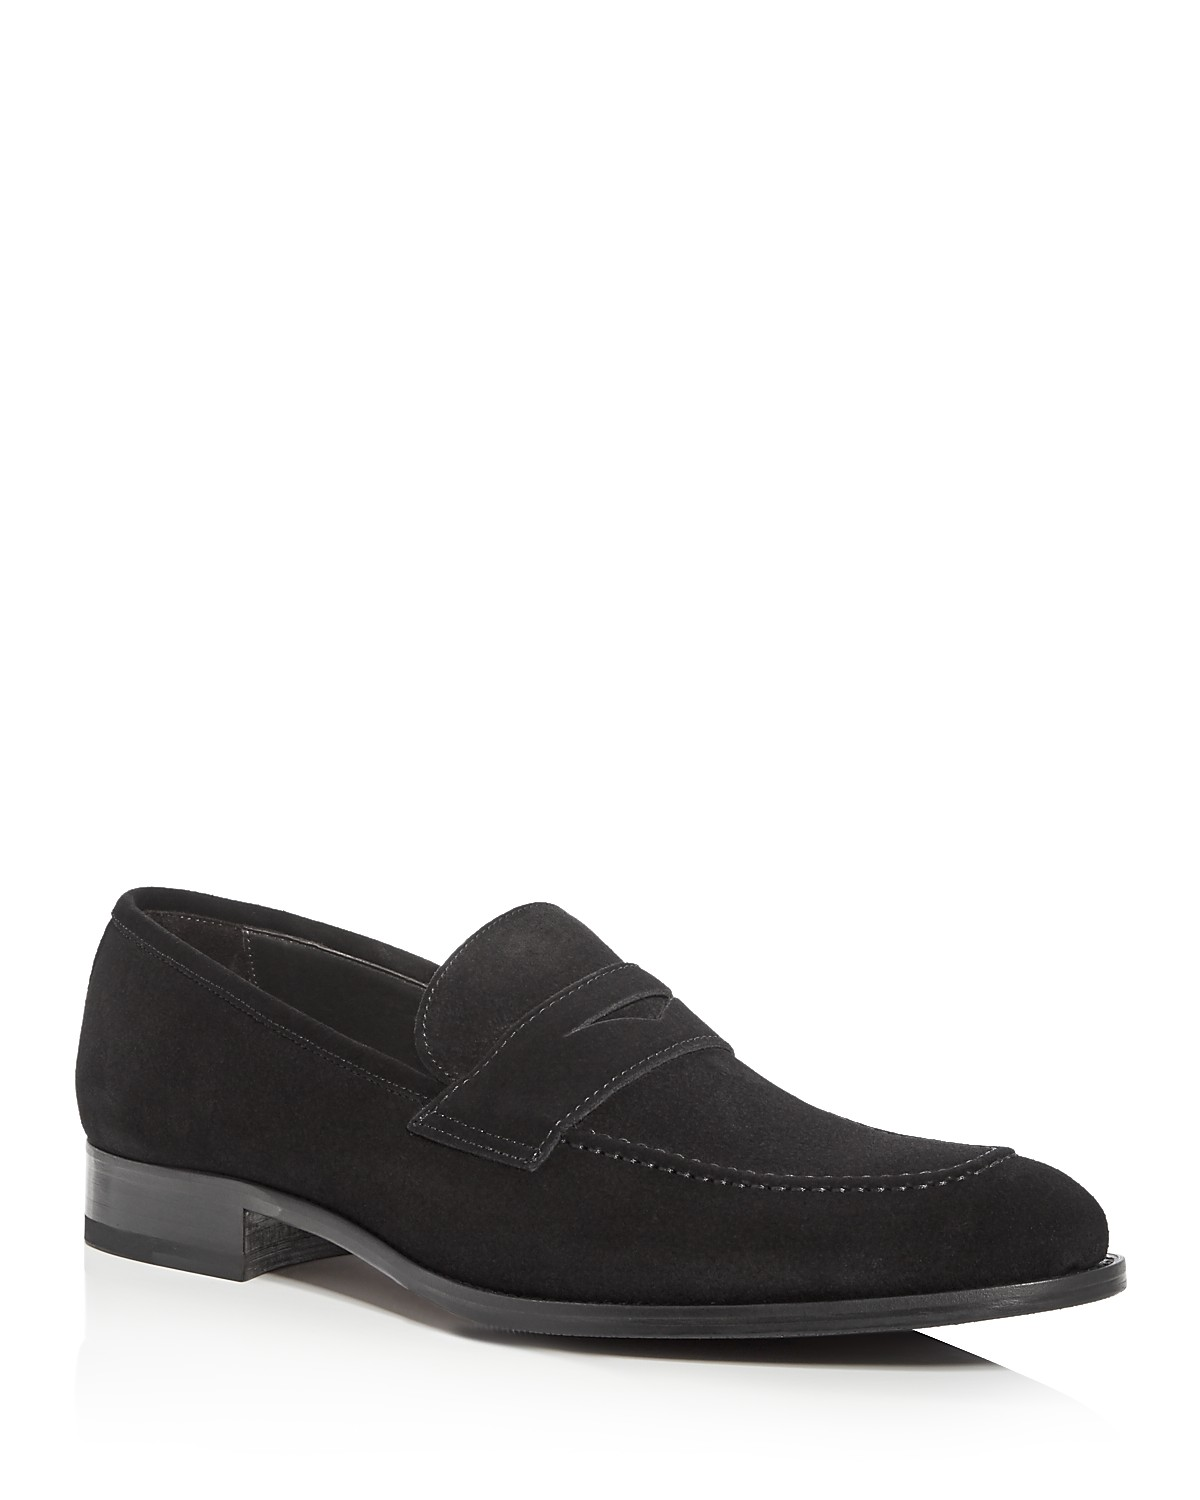 To Boot Men's James Suede Penny Loafers 4AYoJqzoS